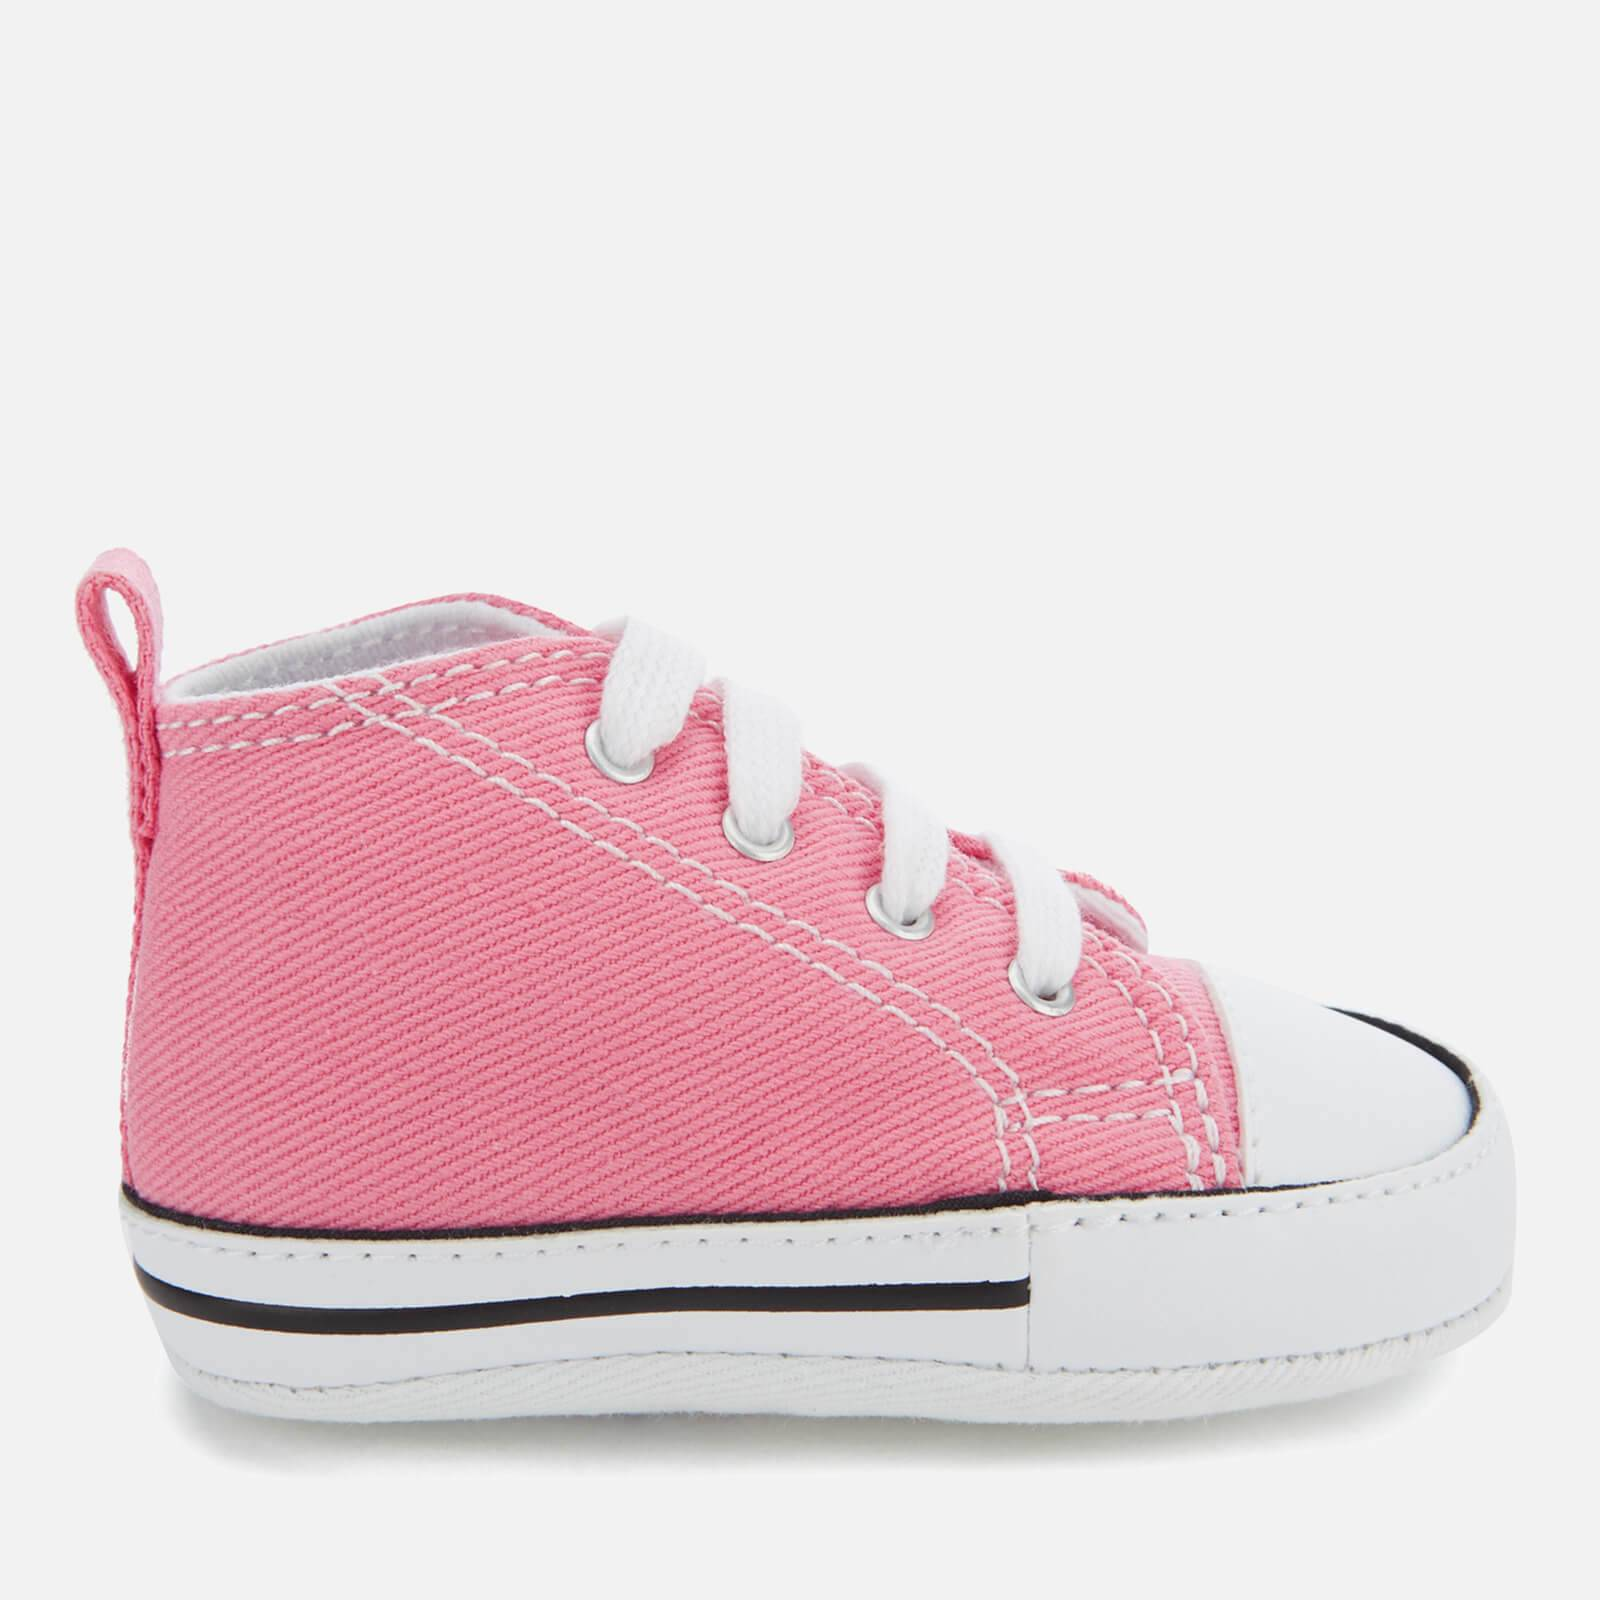 Converse Babies Chuck Taylor First Star Hi-Top Trainers - Pink - UK 1 Baby